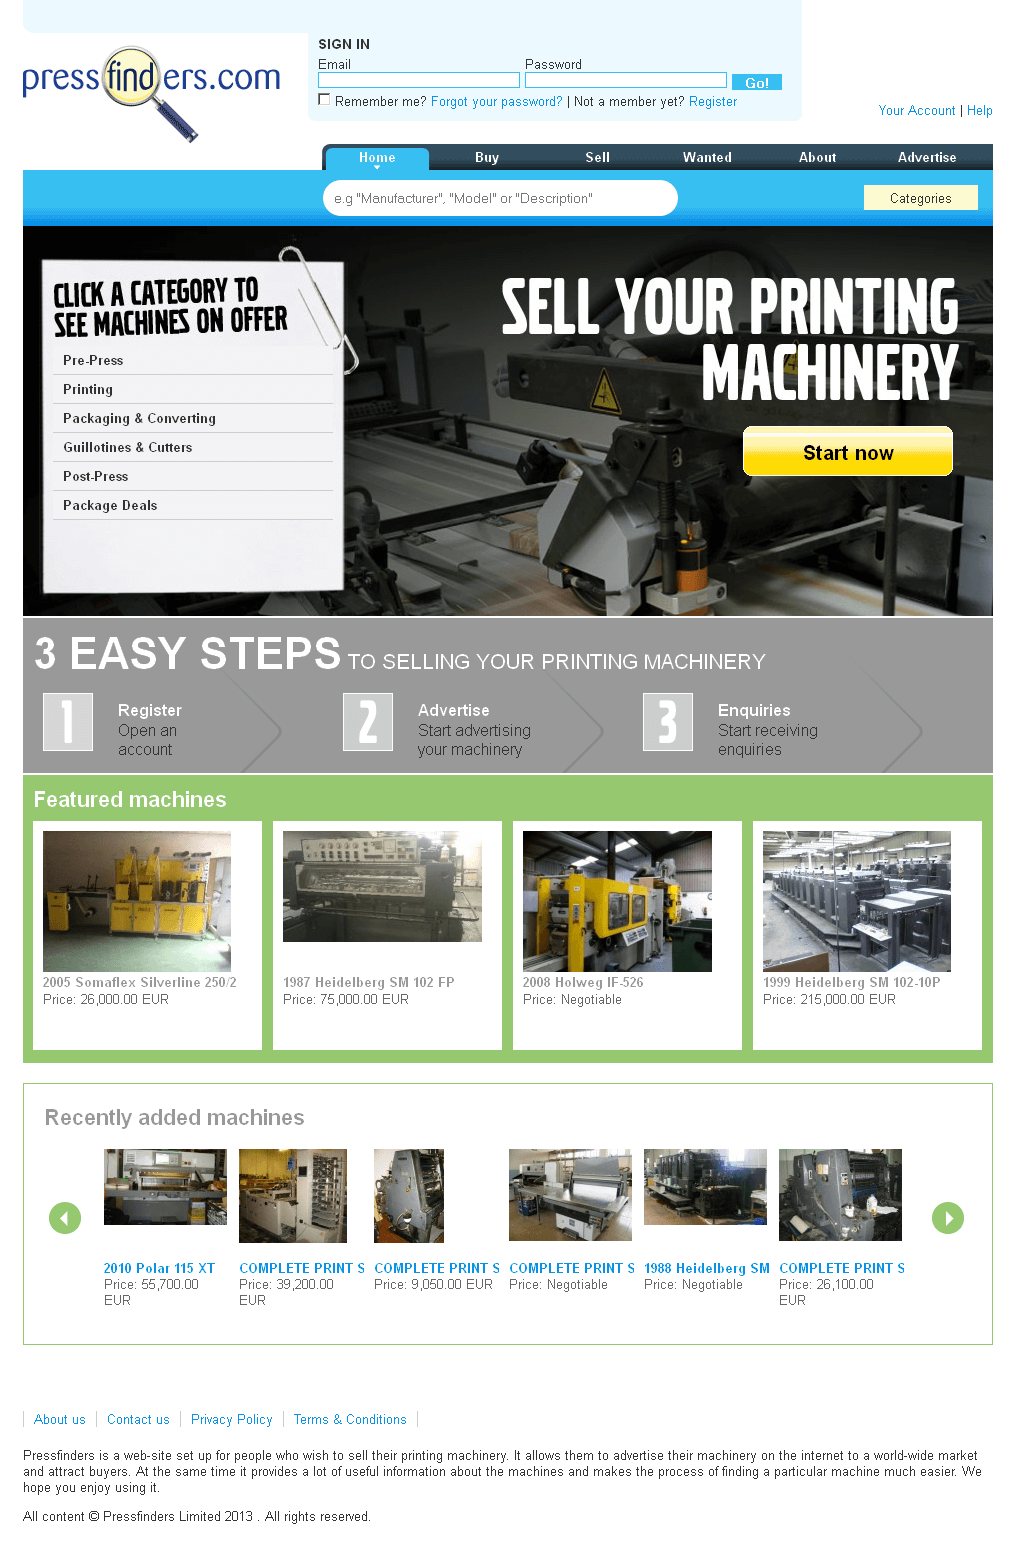 Website for 'PressFinders' Using PHP – Sell Printing Machinery